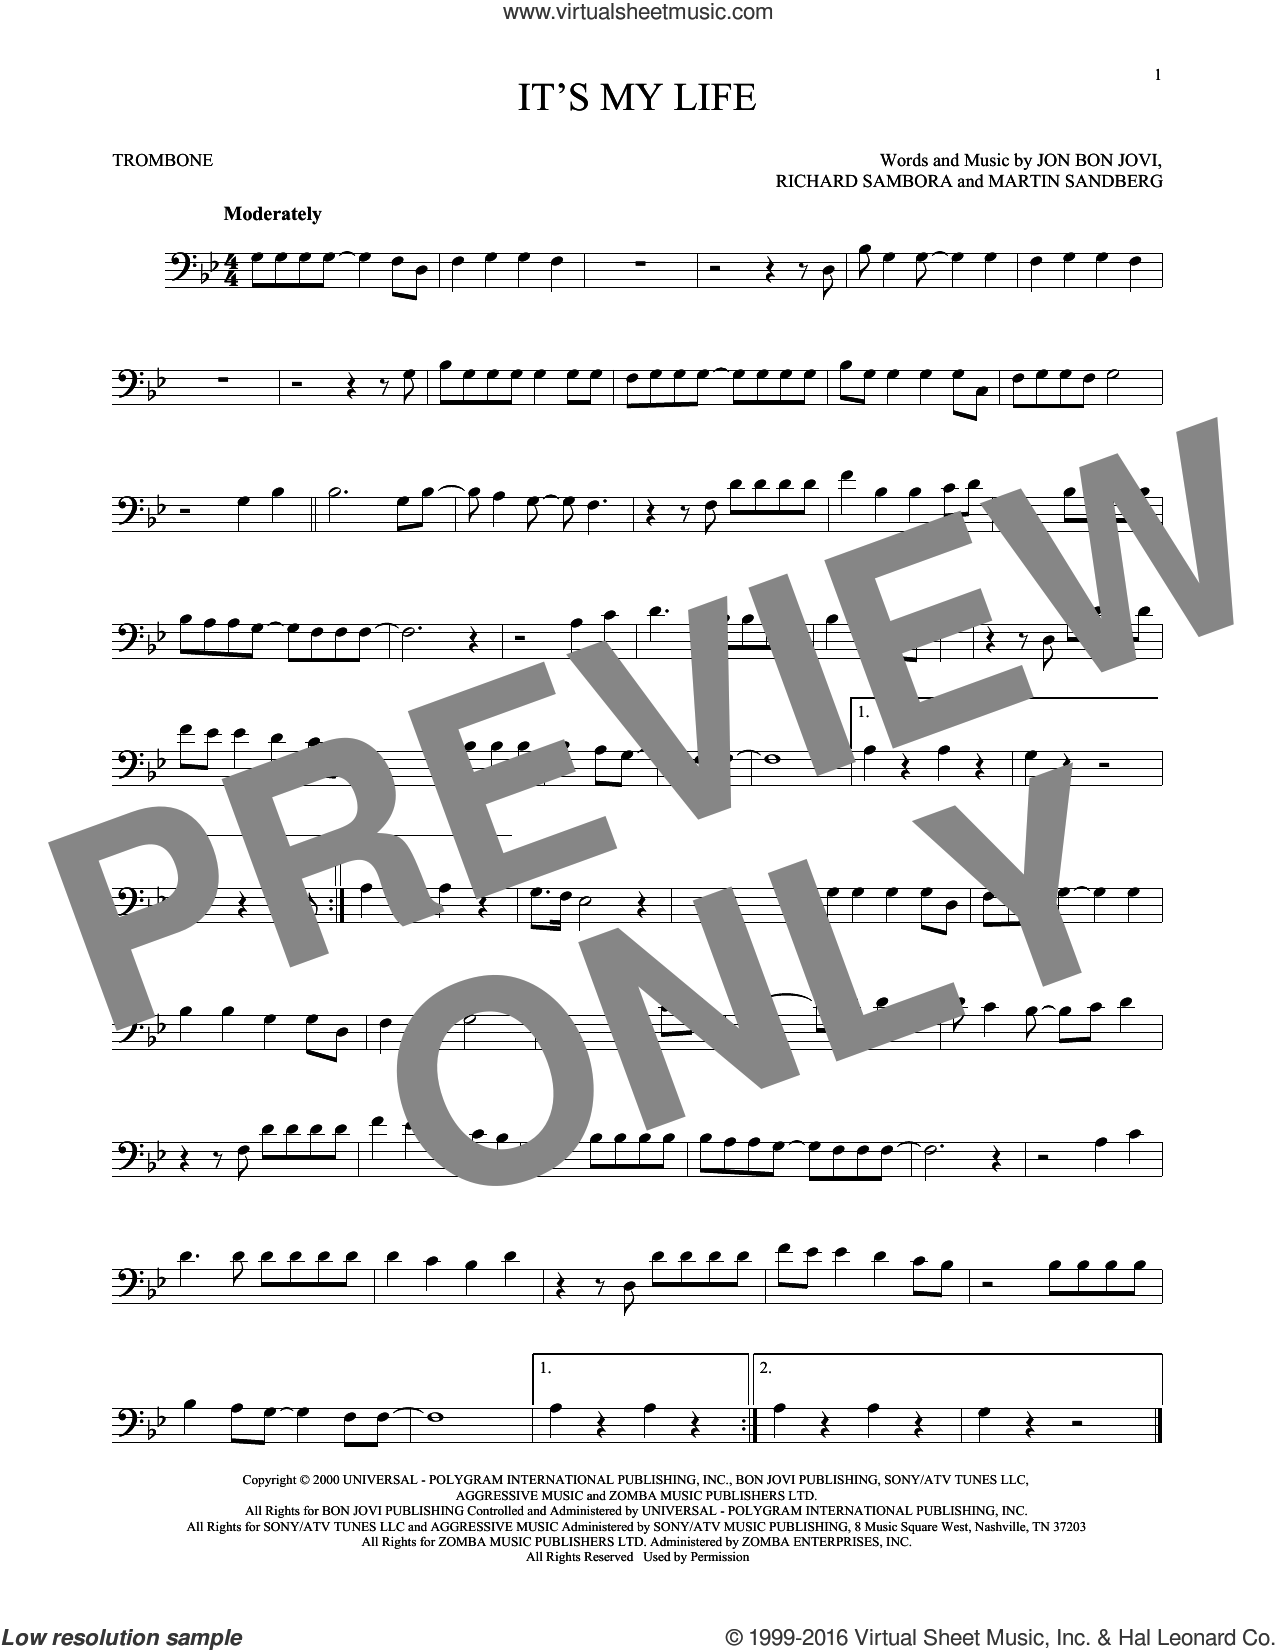 It's My Life sheet music for trombone solo by Bon Jovi, Martin Sandberg and Richie Sambora, intermediate skill level